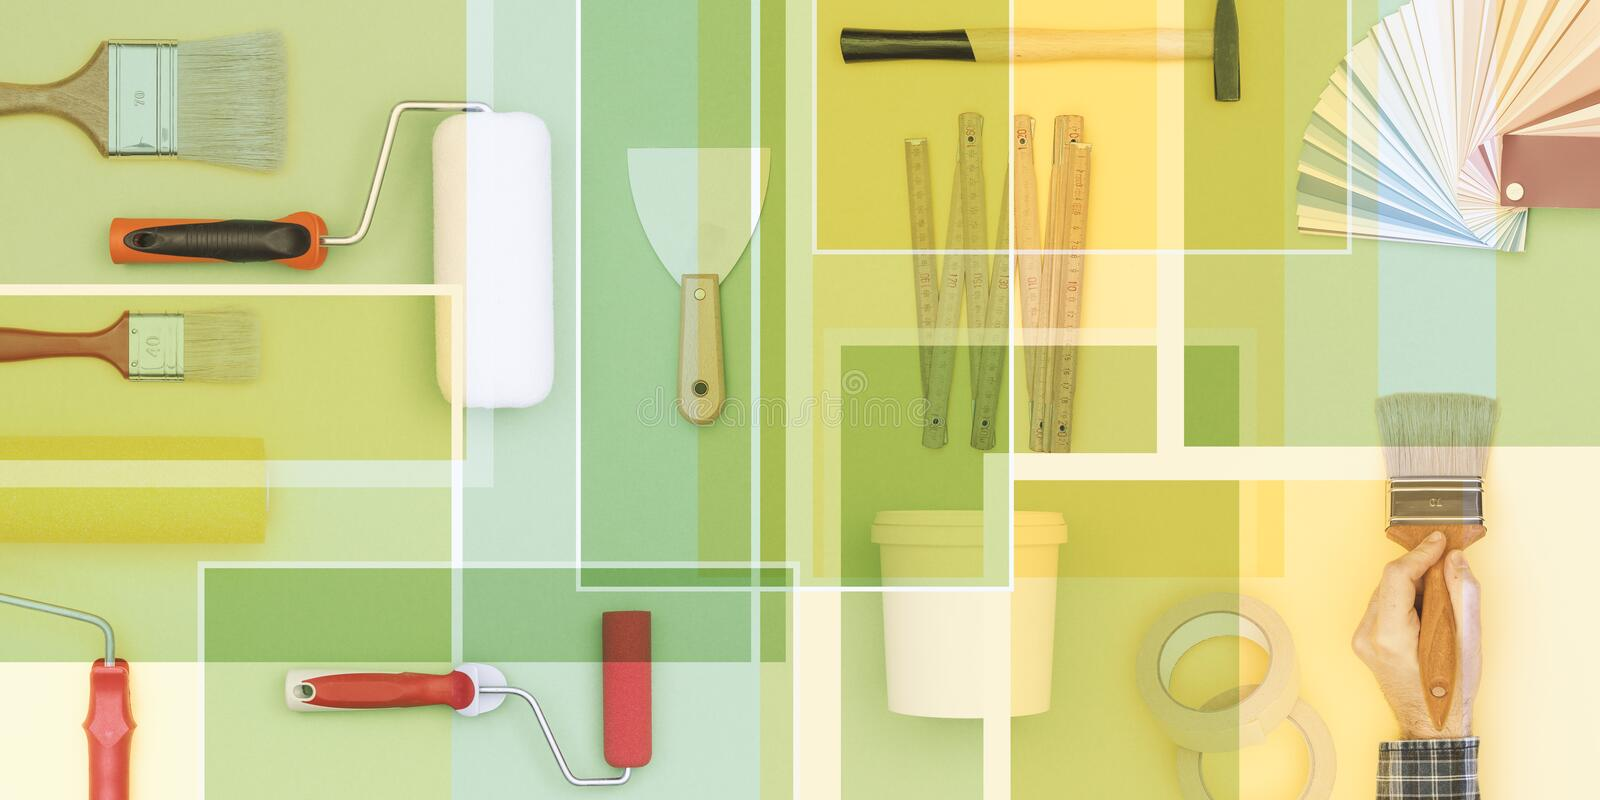 Do it yourself tools mosaic stock image image of decorator download do it yourself tools mosaic stock image image of decorator accessories 118351565 solutioingenieria Gallery